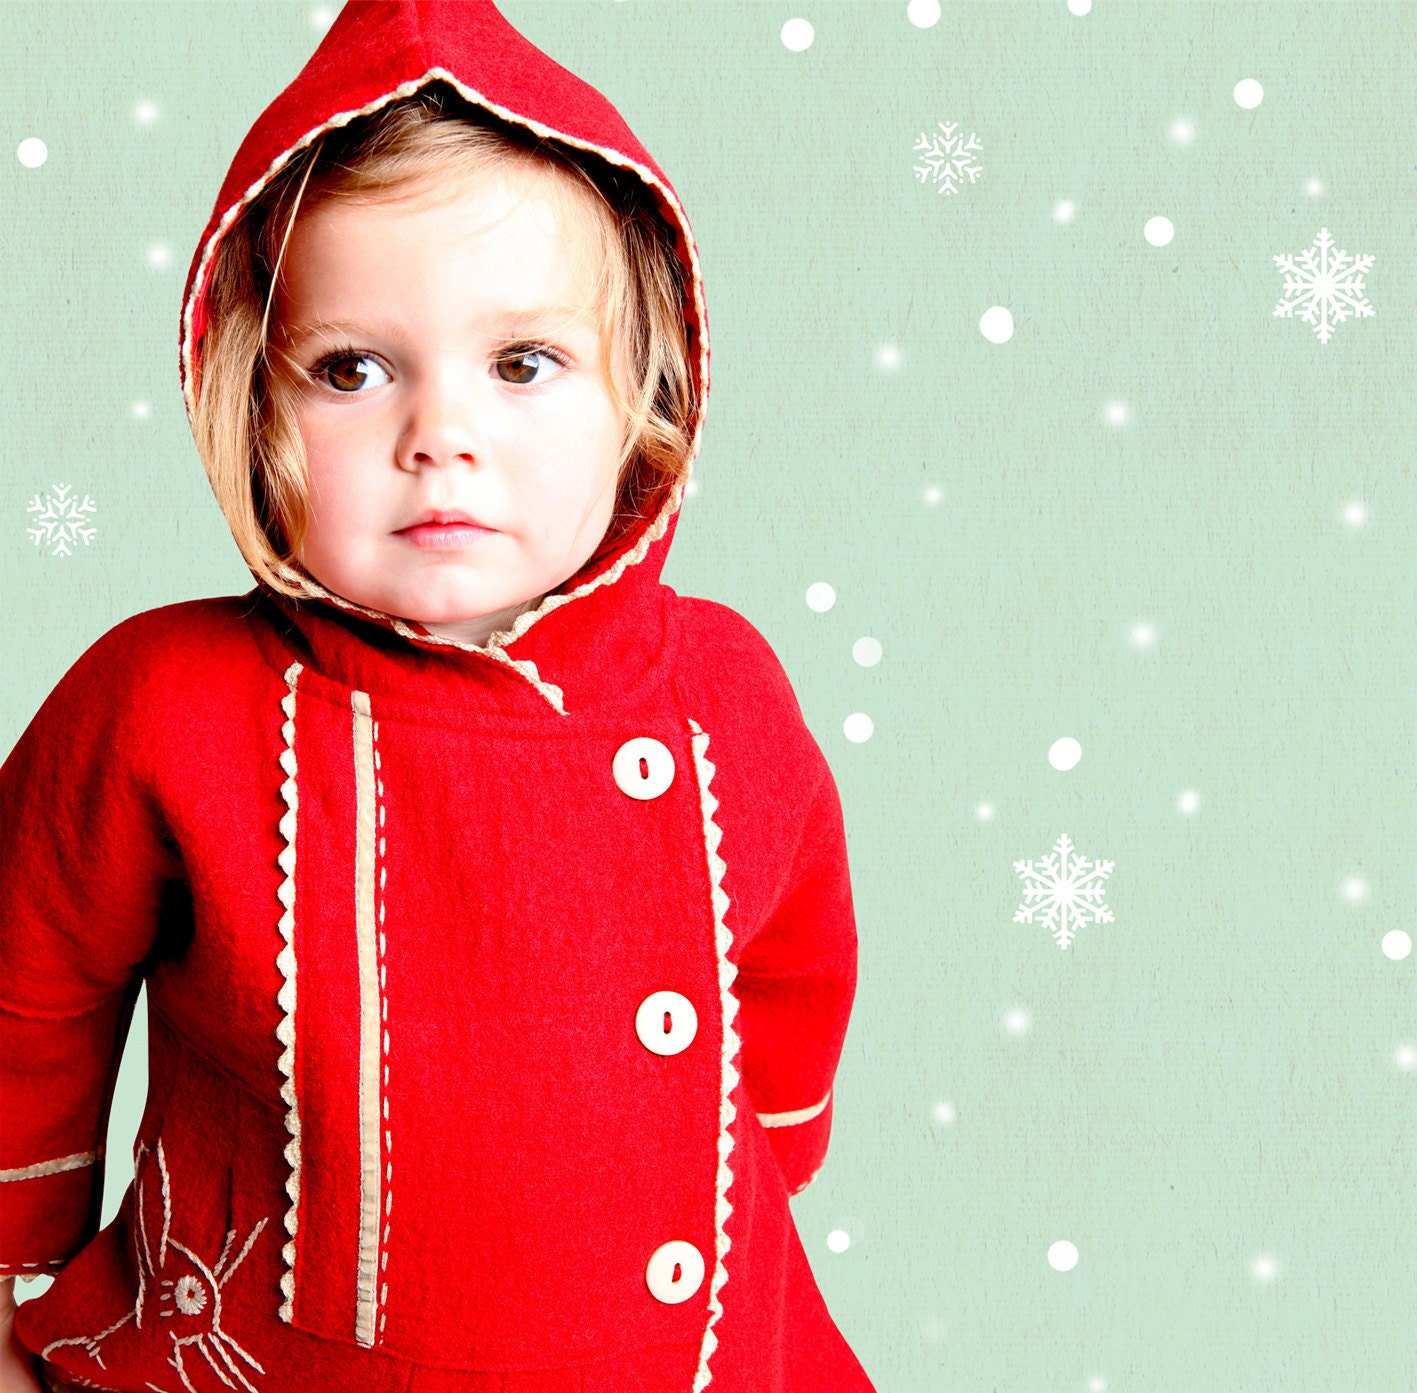 Little girl in read coat with bunny detail on the pocket